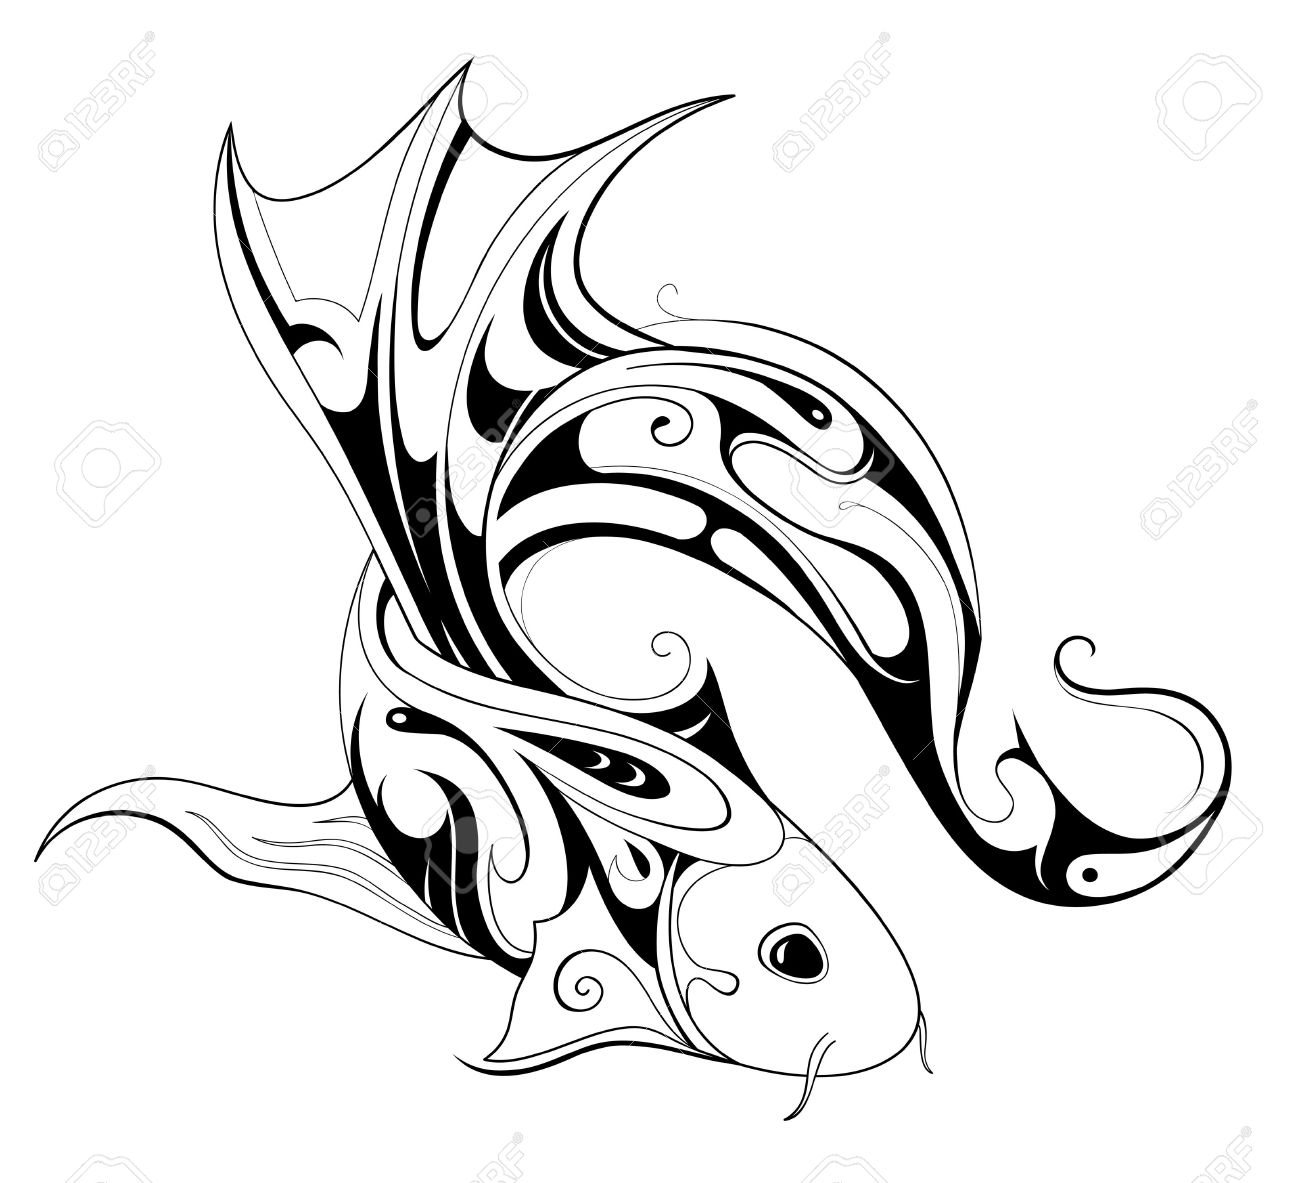 Koi clipart #11, Download drawings